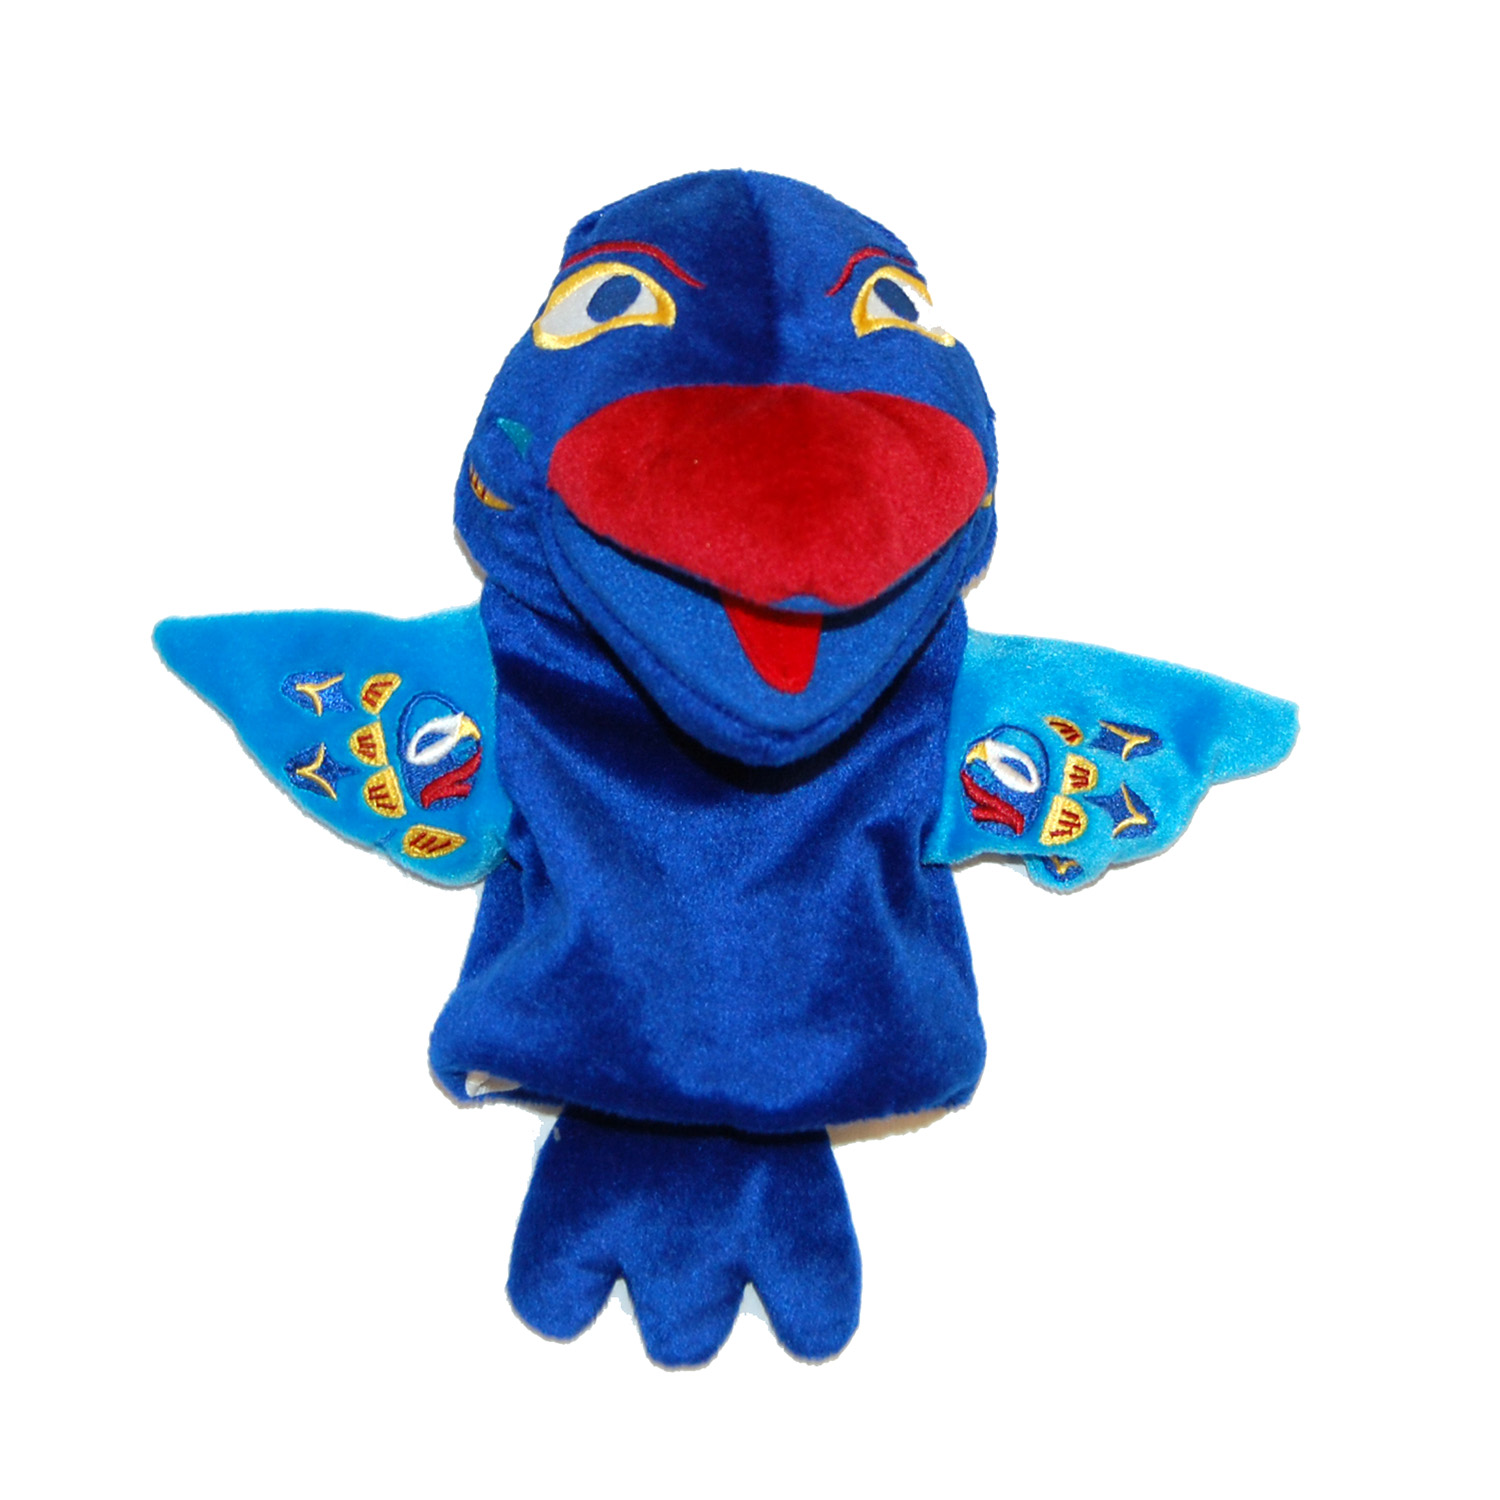 blue raven hand puppet created by First Nations artist